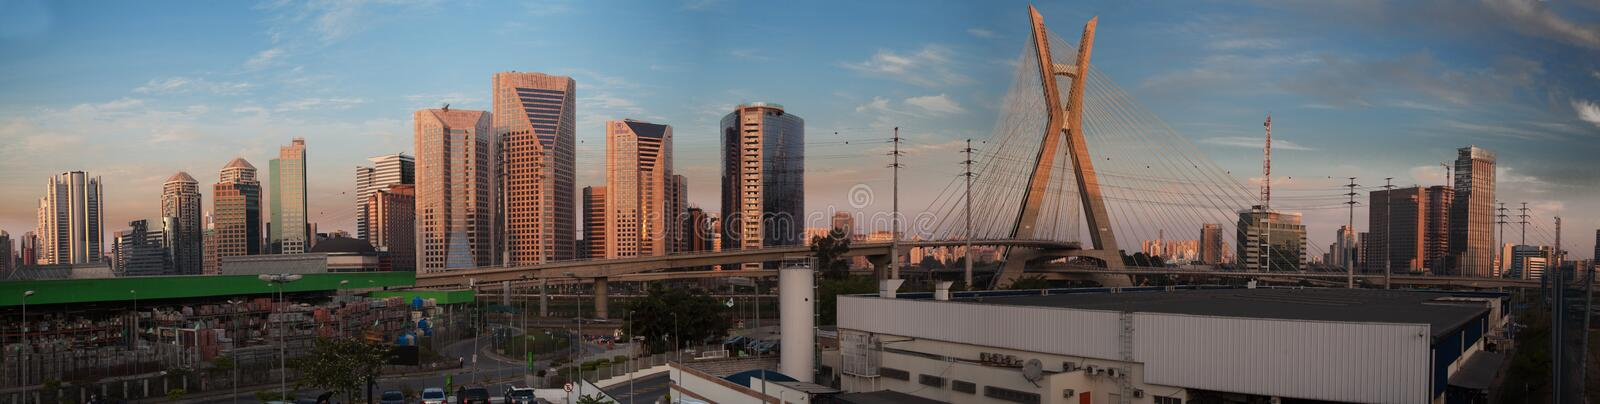 Passerelle Sao Paulo d'Estaiada photos stock